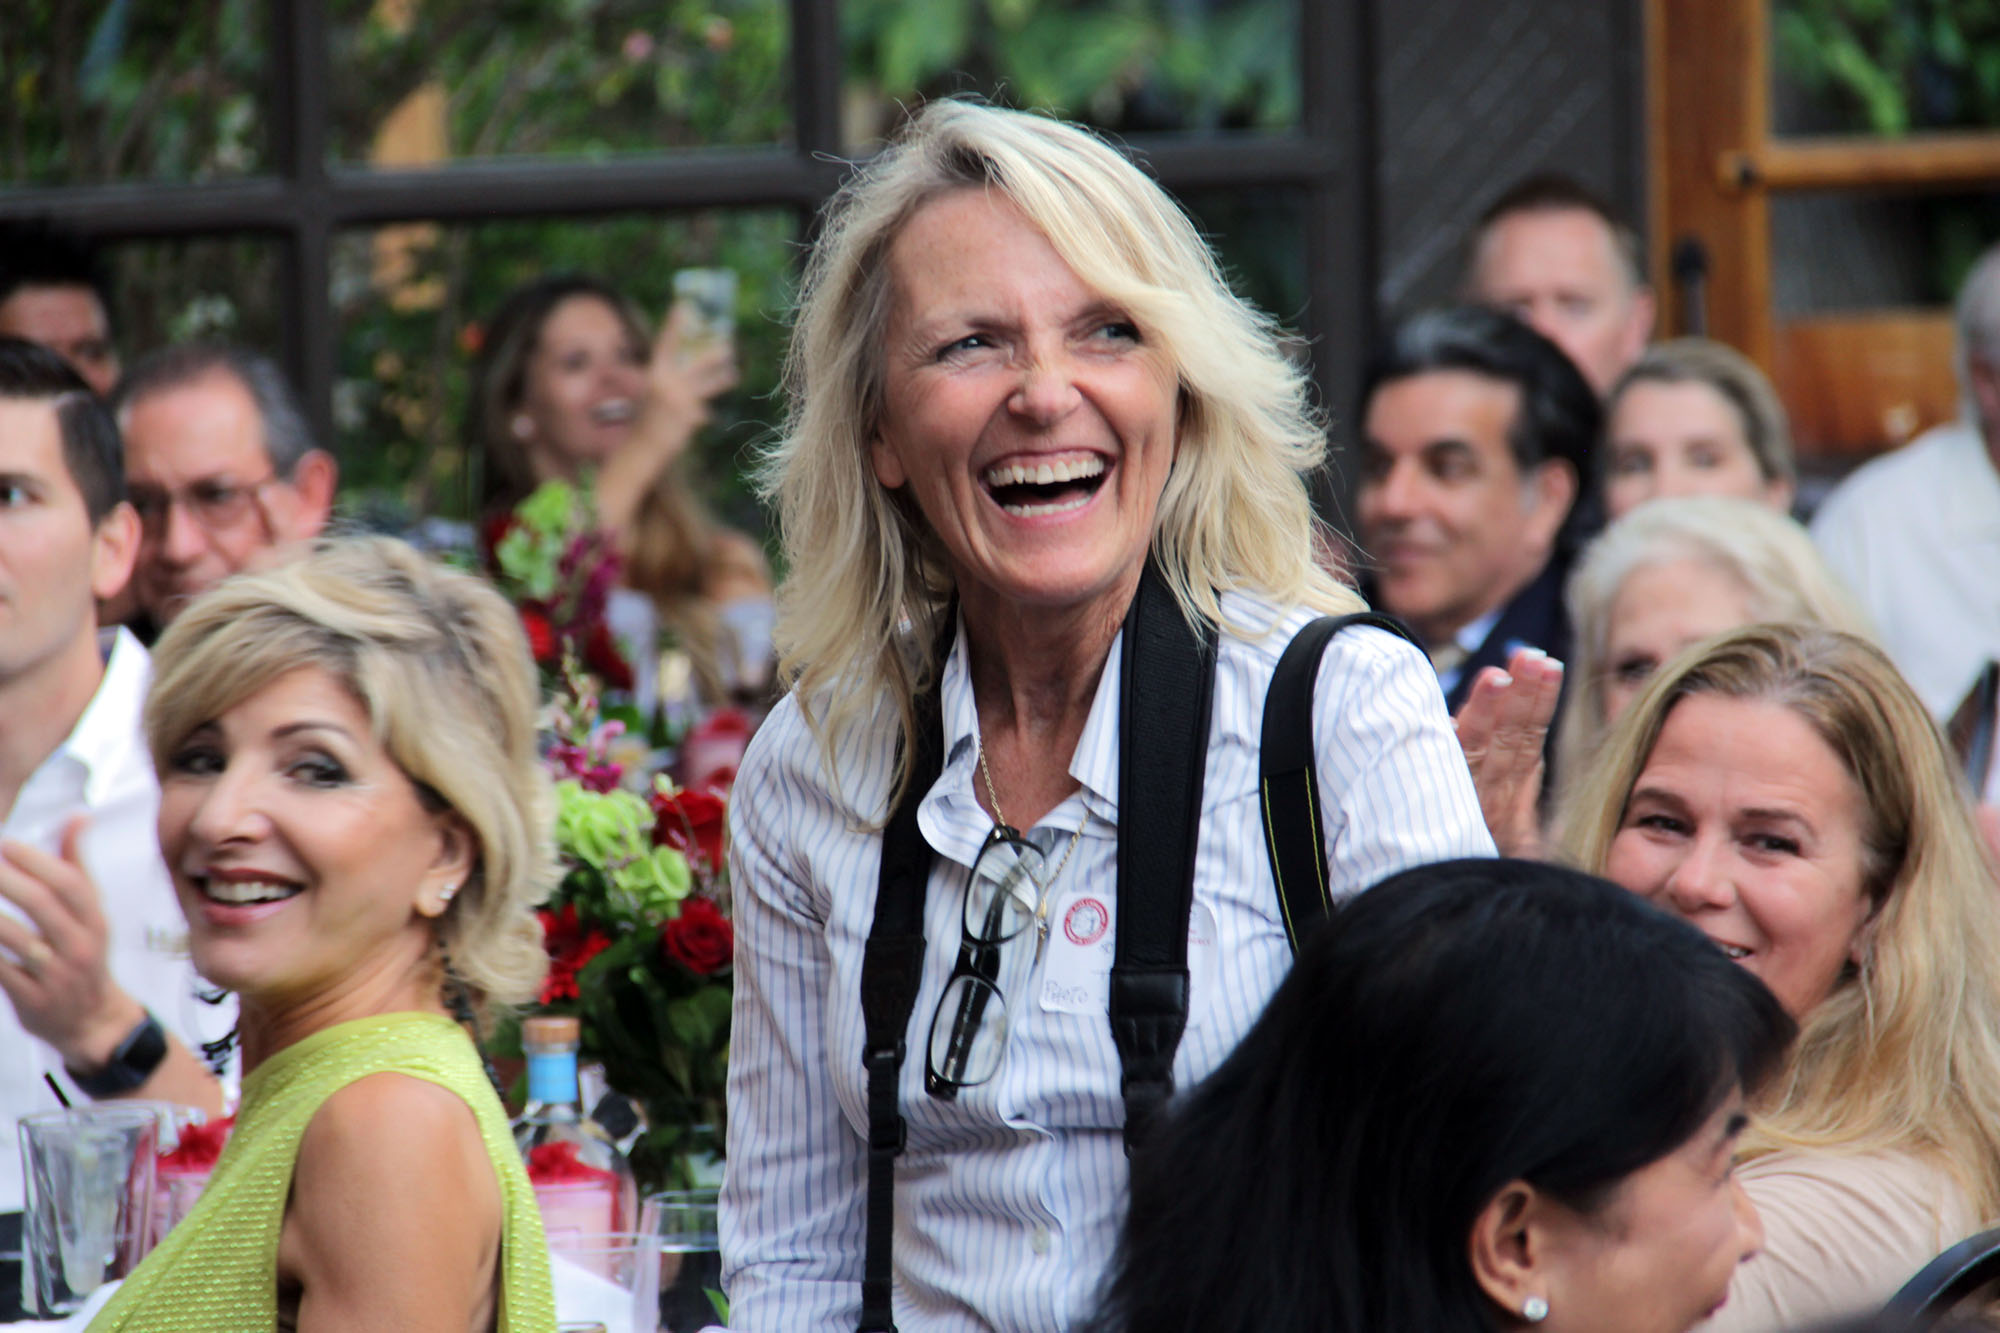 Diana Schmitt is elated after she and her husband Scott Schmitt were recognized with the San Juan Capistrano Chamber of Commerce's Lifetime Achievement Award on July 11. Photo: Shawn Raymundo